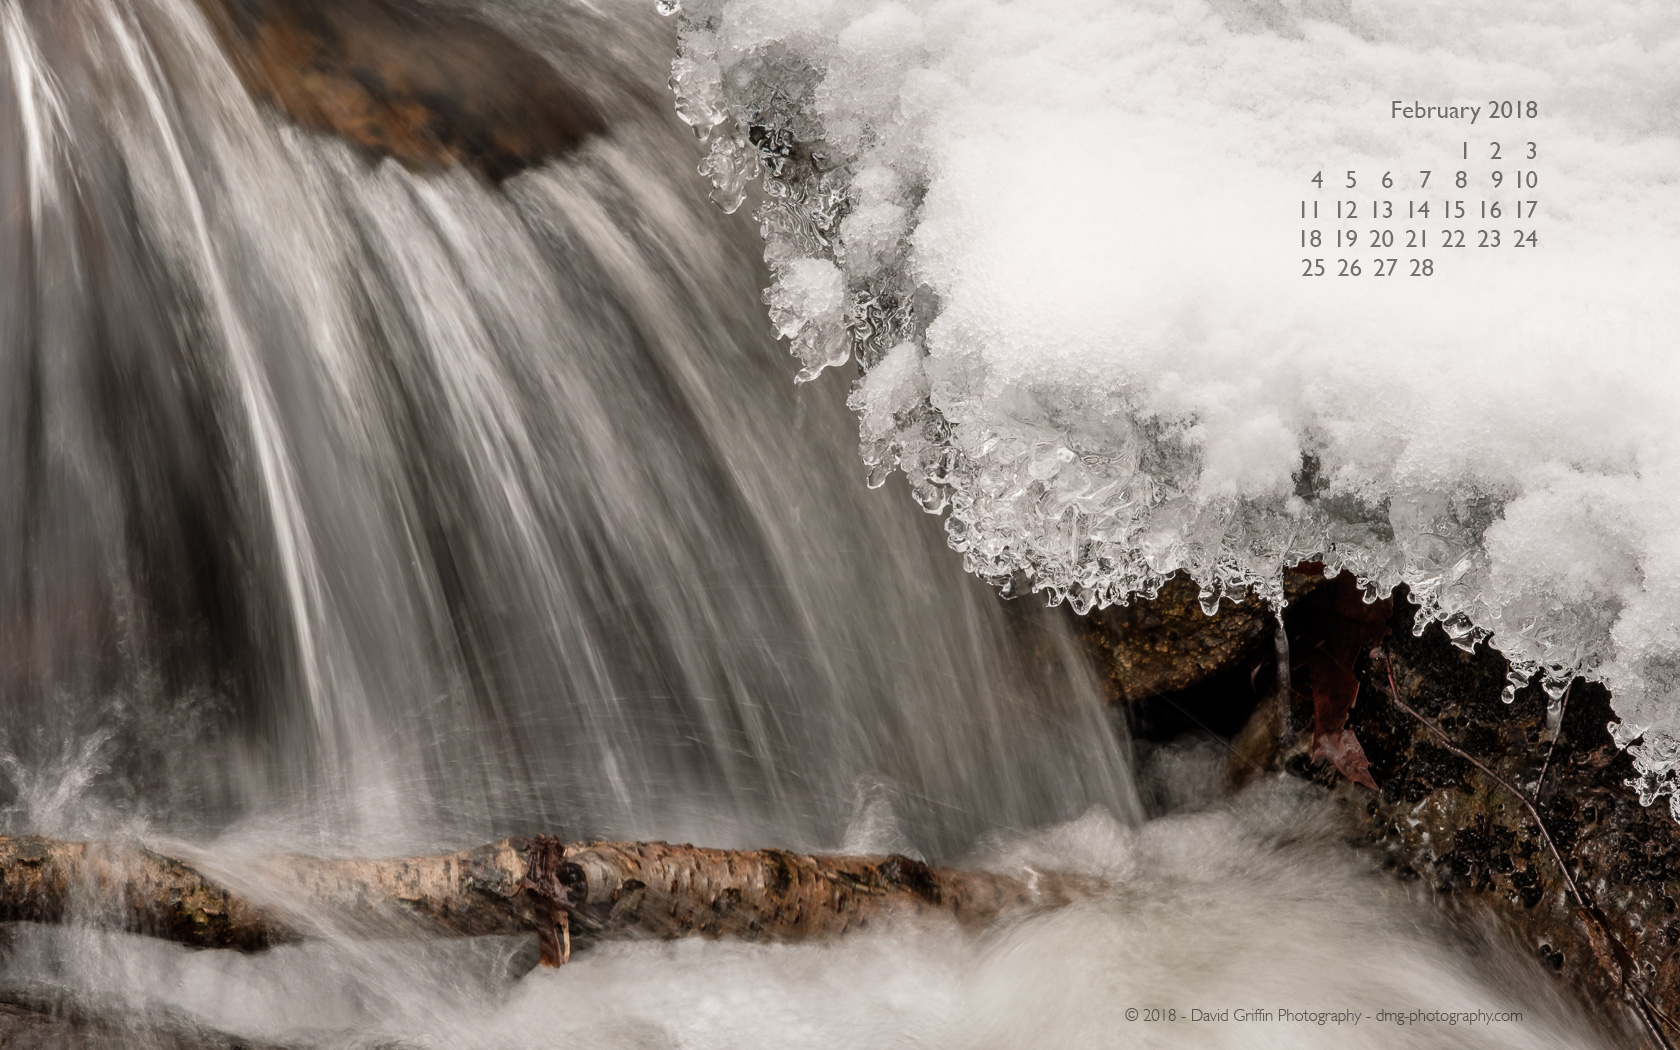 February 2018 Wallpaper David Griffin Photography 1680x1050